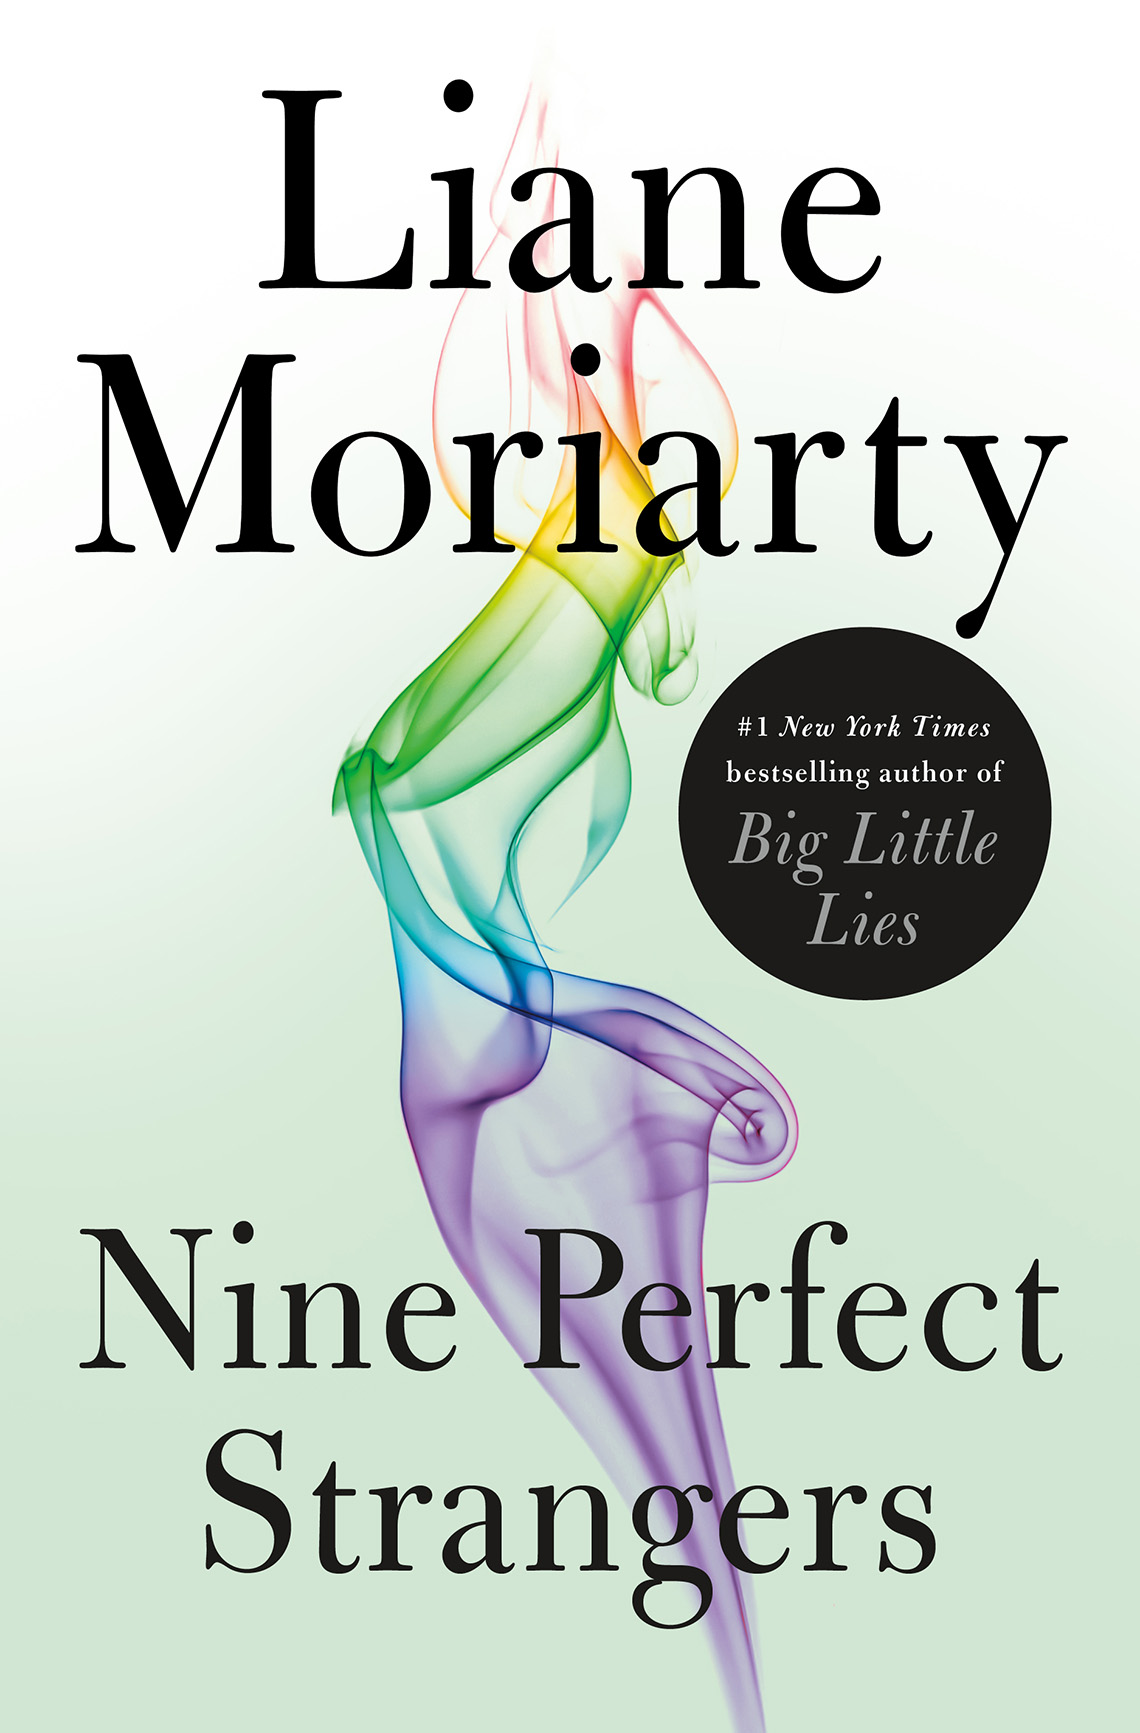 """Book cover reads """"Liane Moriarty, Nine Perfect Strangers"""""""